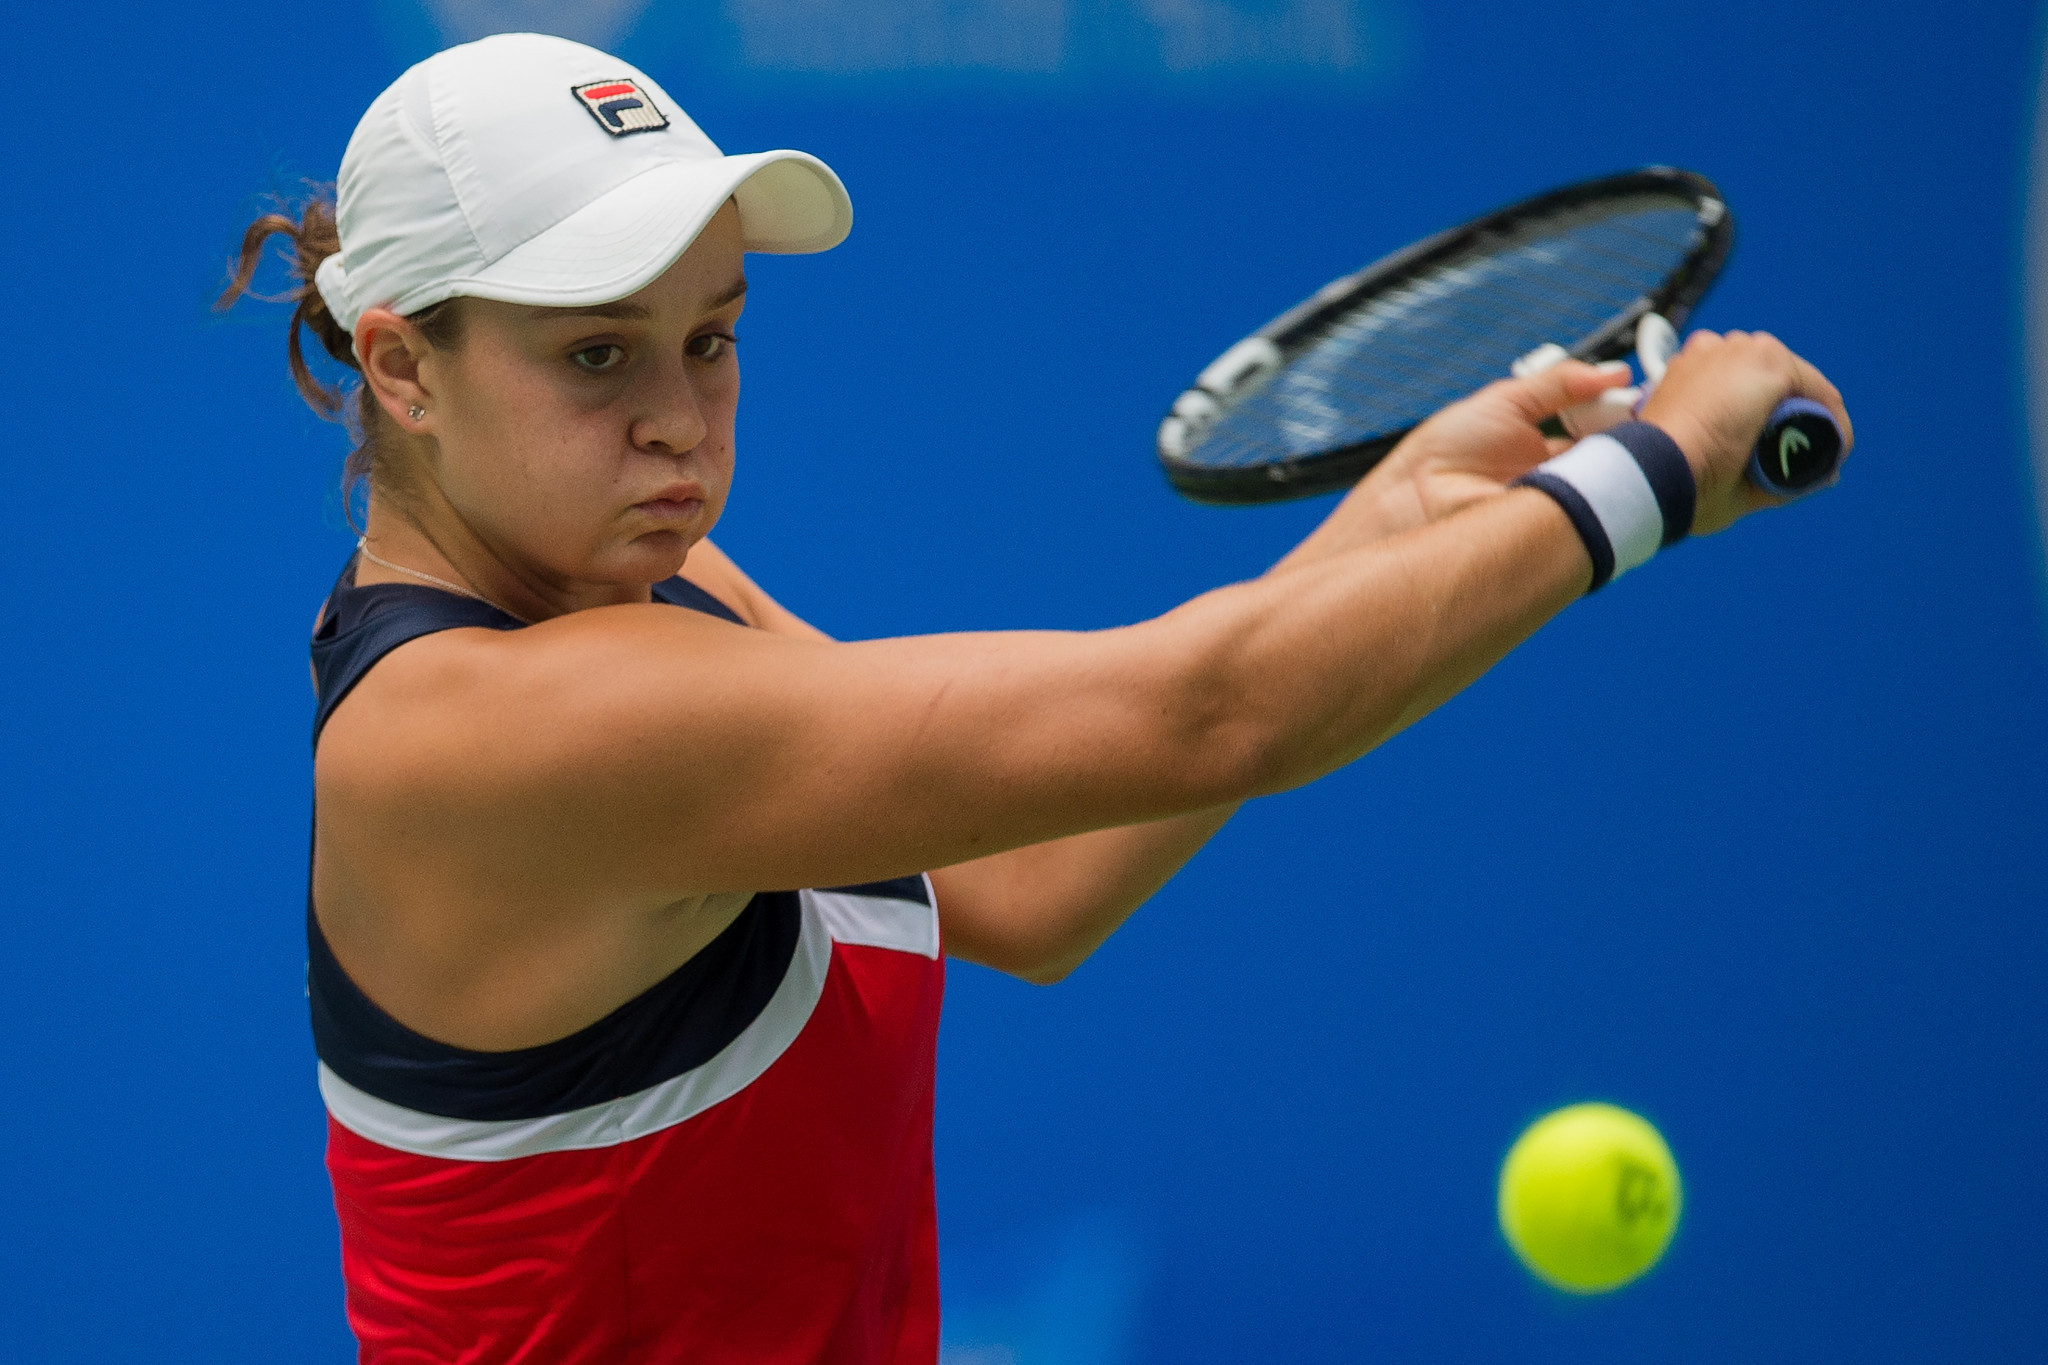 Ashleigh Barty of Australia beat Briton's Johanna Konta in the first round of the Wuhan Open, China ©Getty Images